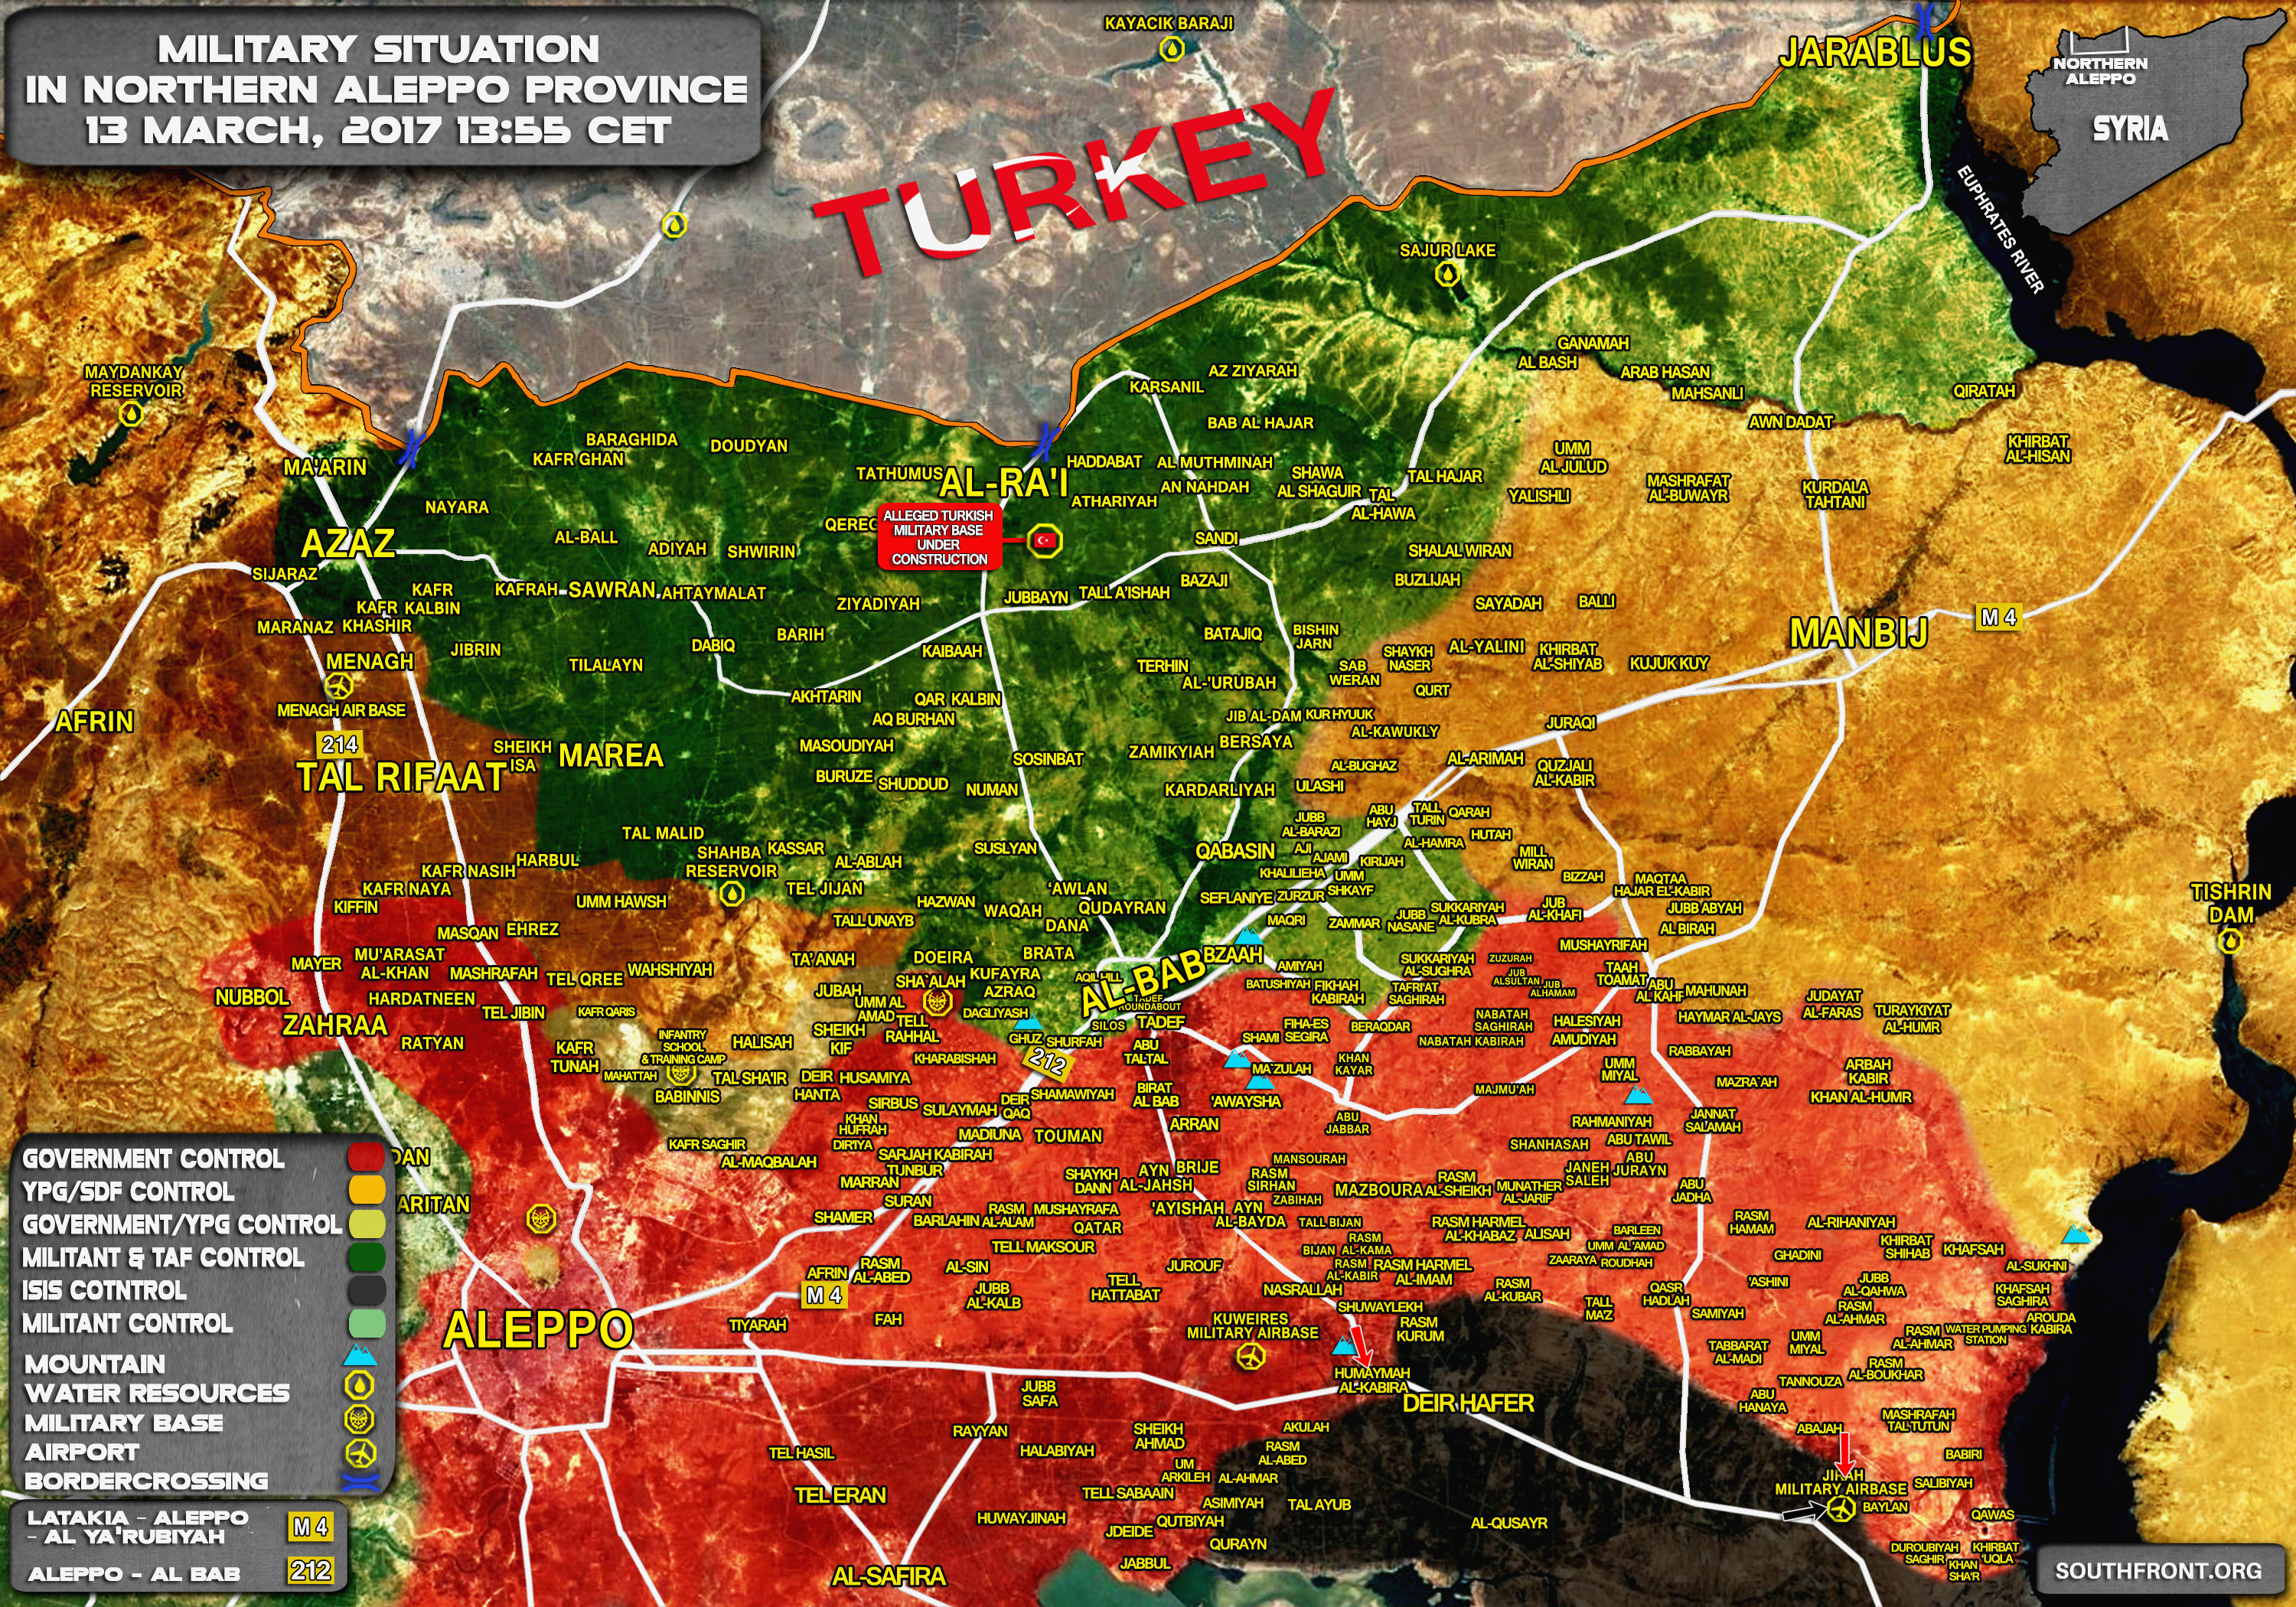 13m_13_55_northern-aleppo_Syria_War_Map.